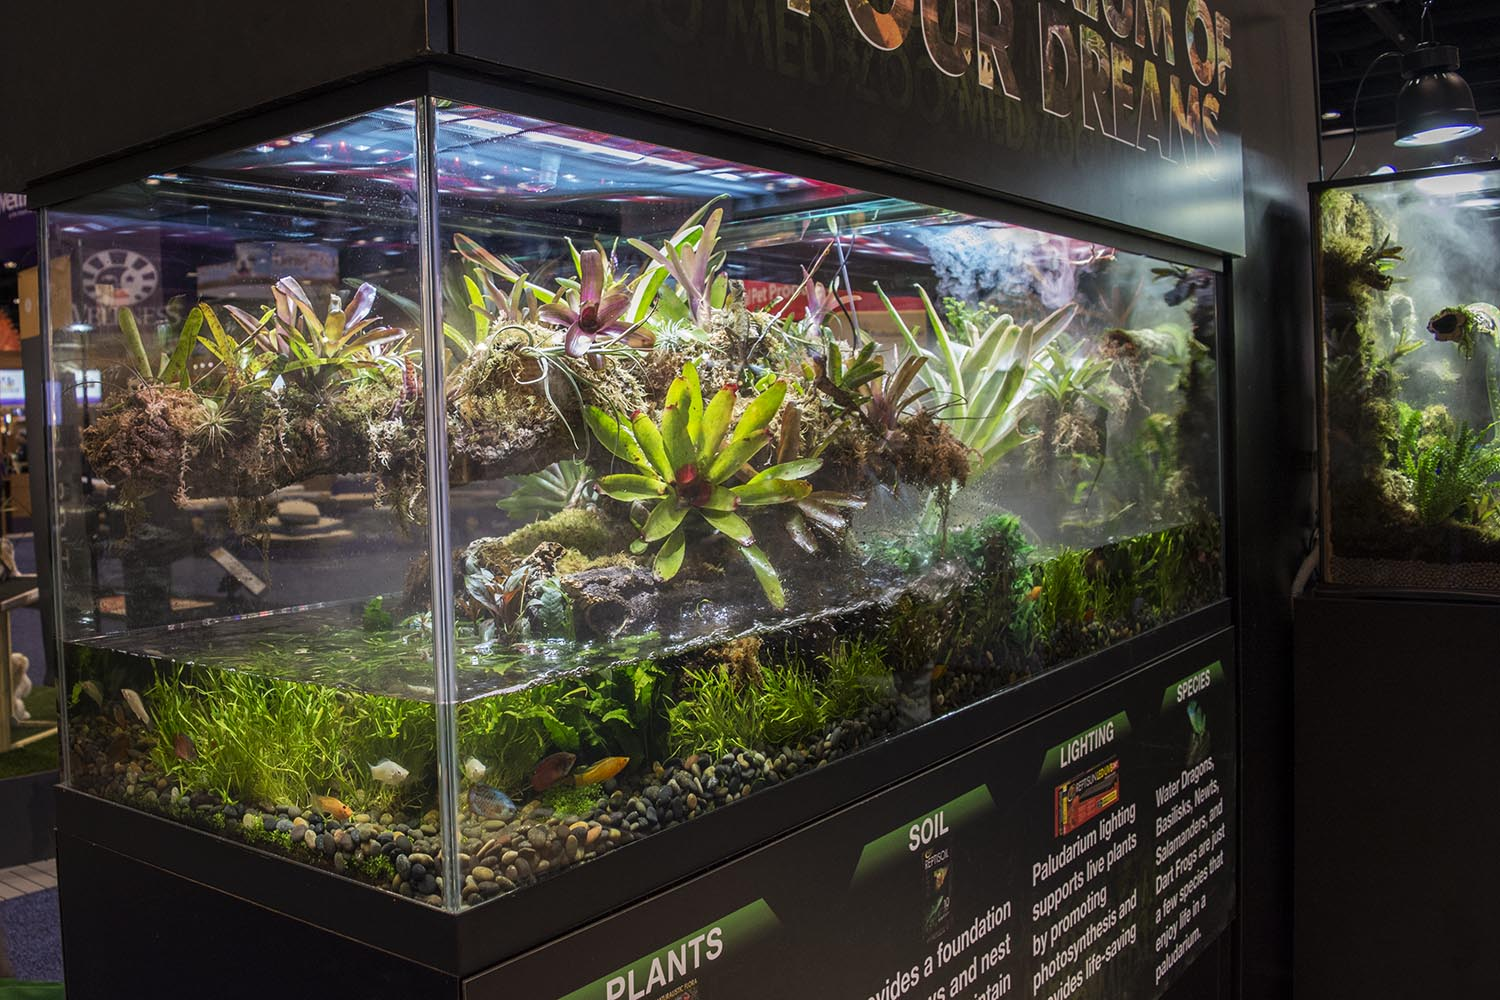 The Zoo Med booth, although more focused on the reptile and amphibian hobby, featured a large and beautifully designed paludarium housing both fish and reptiles